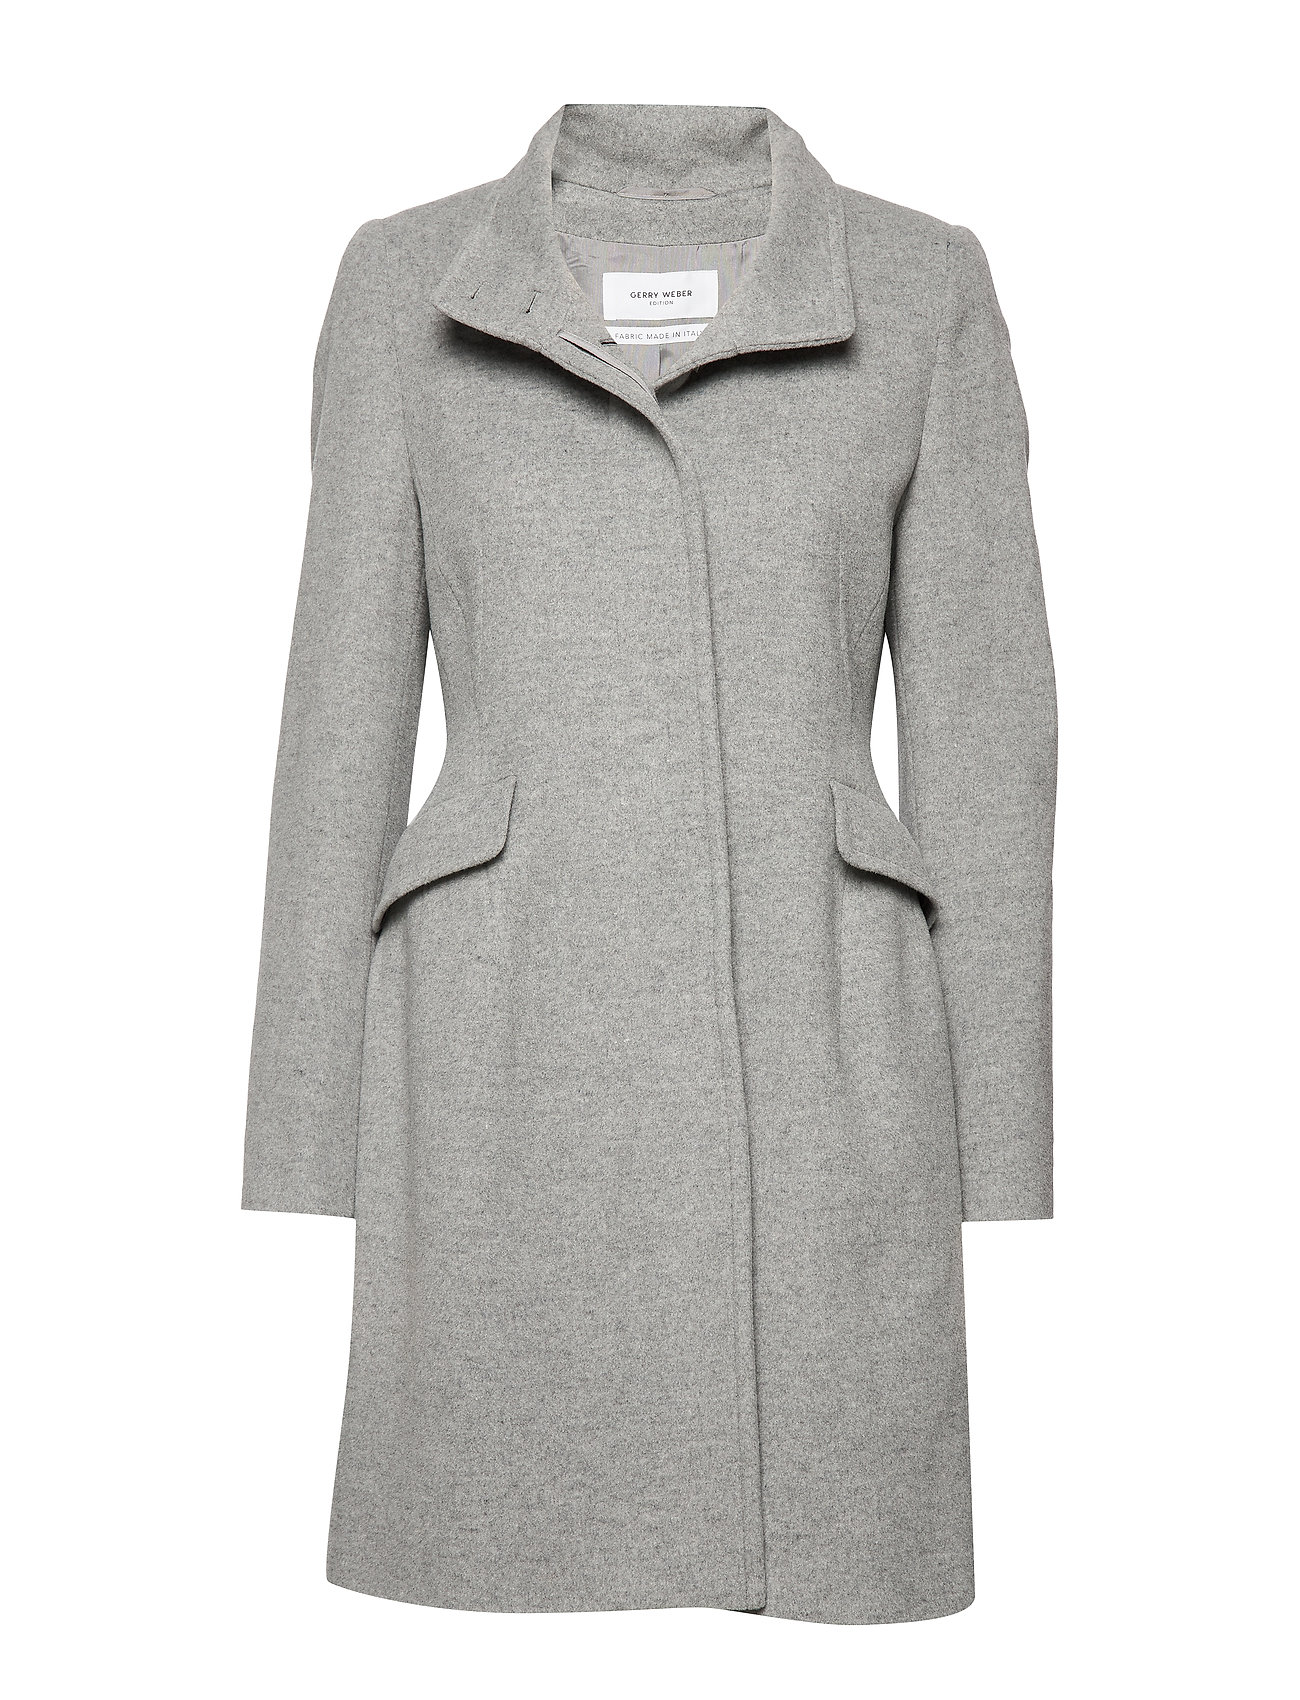 Gerry Weber Edition COAT WOOL - SILVER